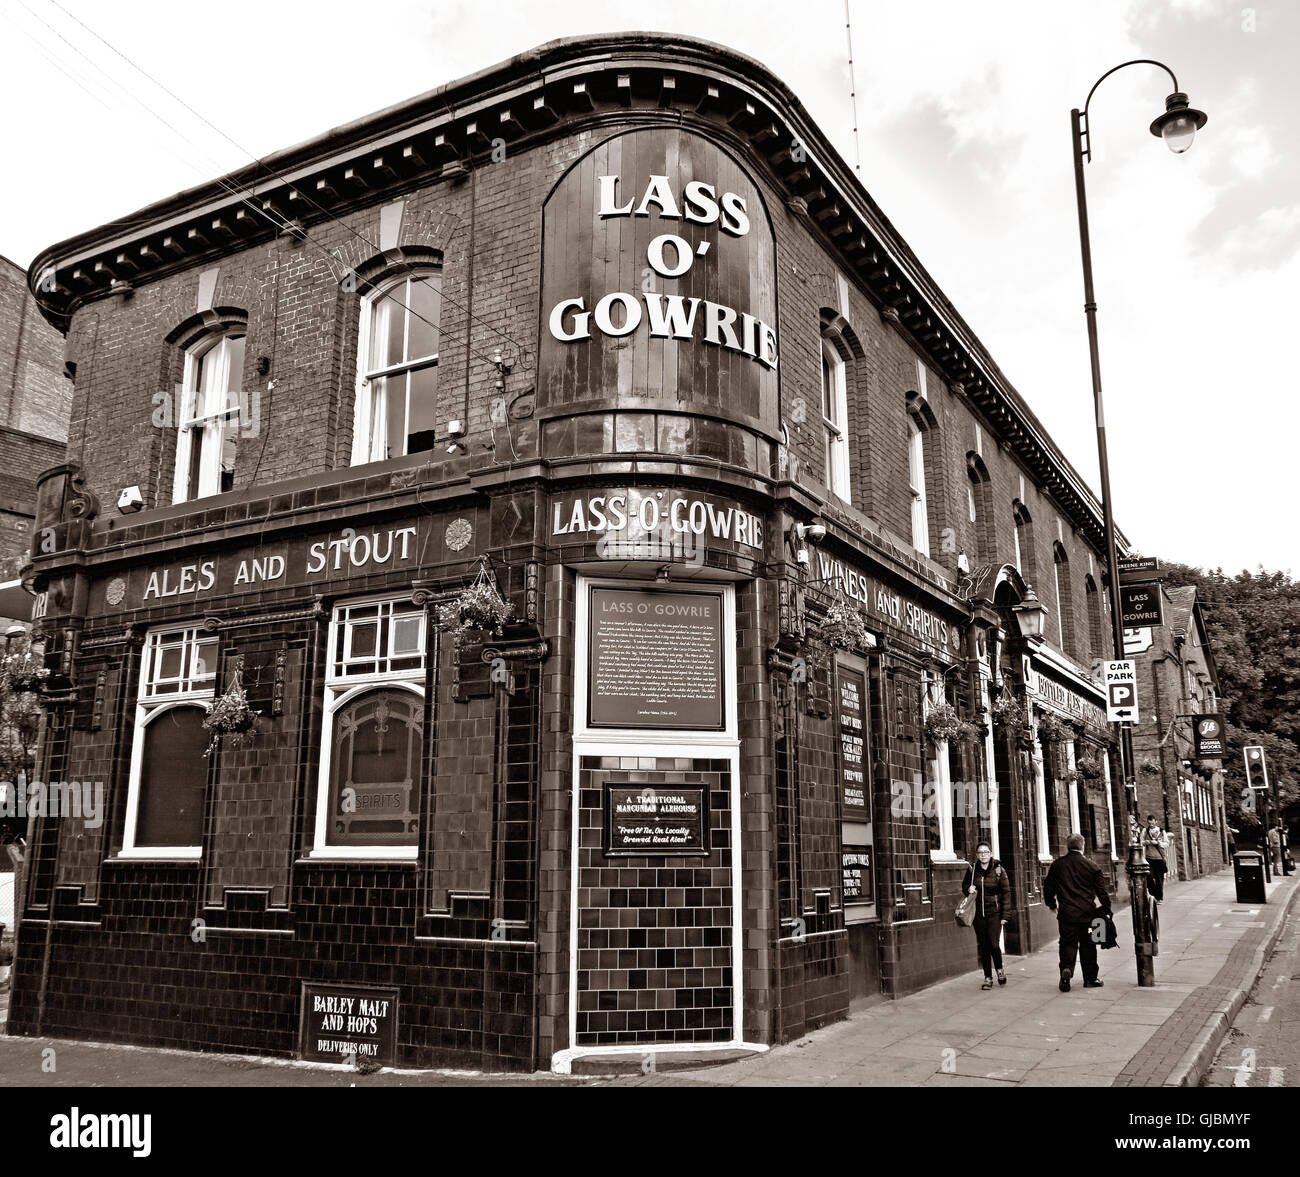 Lass O Gowrie pub, 36 Charles St, Manchester, North West England, UK,  M1 7DB in Sepia Black & White - Stock Image